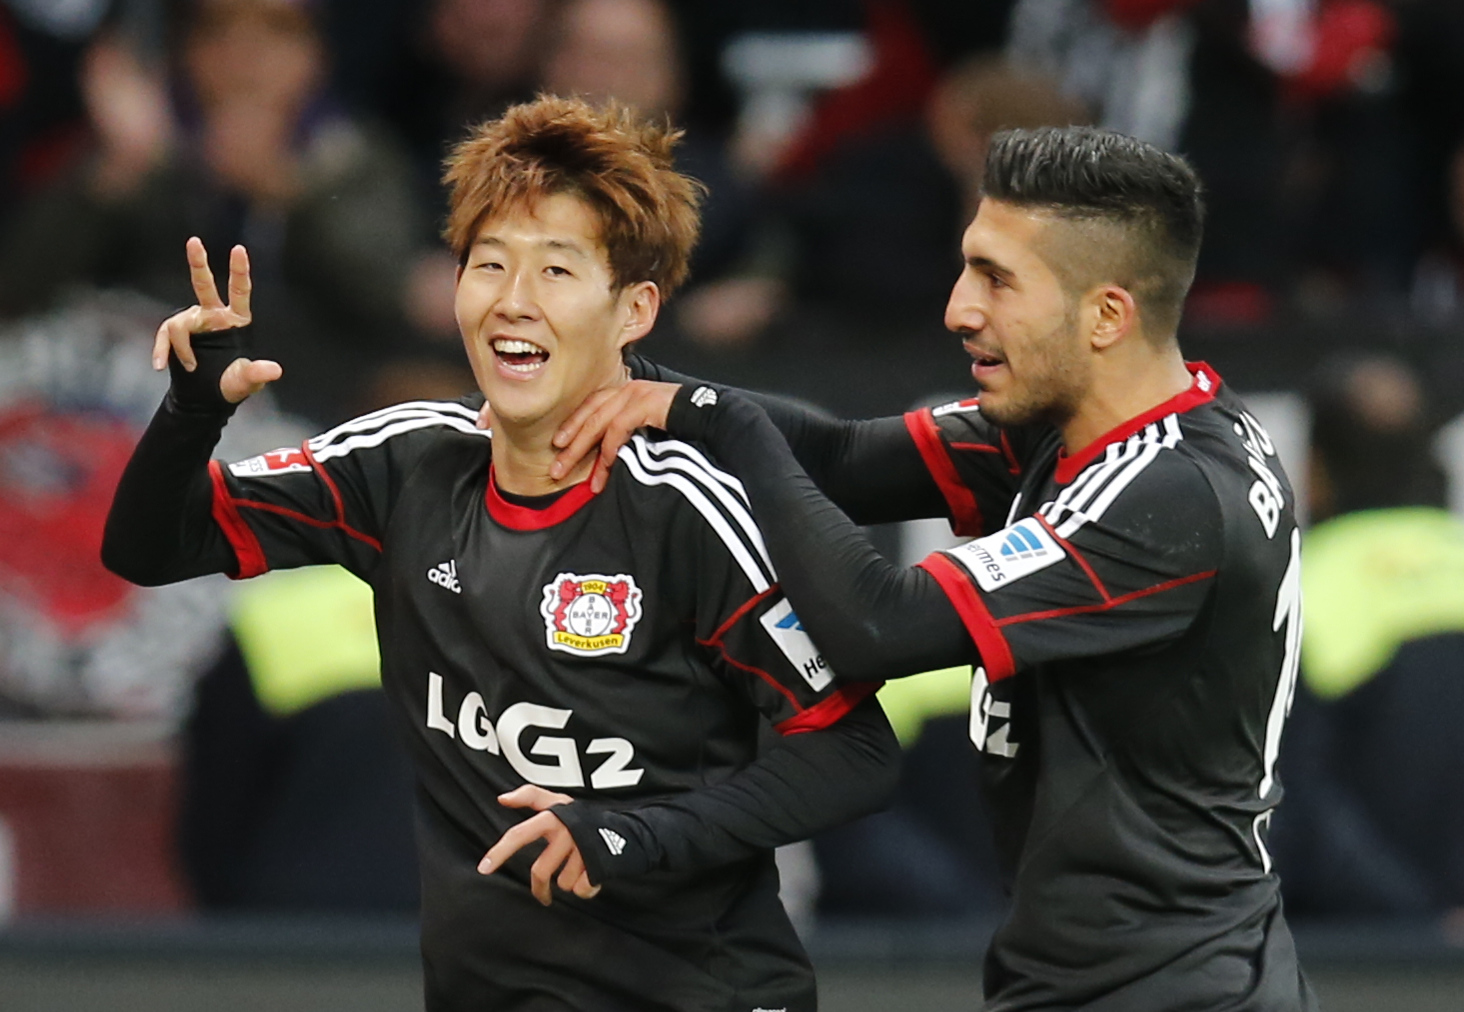 everkusen's Son Heung-min  of South Korea, left, and Leverkusen's Emre Can celebrate after scoring during the German first division Bundesliga soccer match between Bayer Leverkusen and Hamburger  SV  last year.